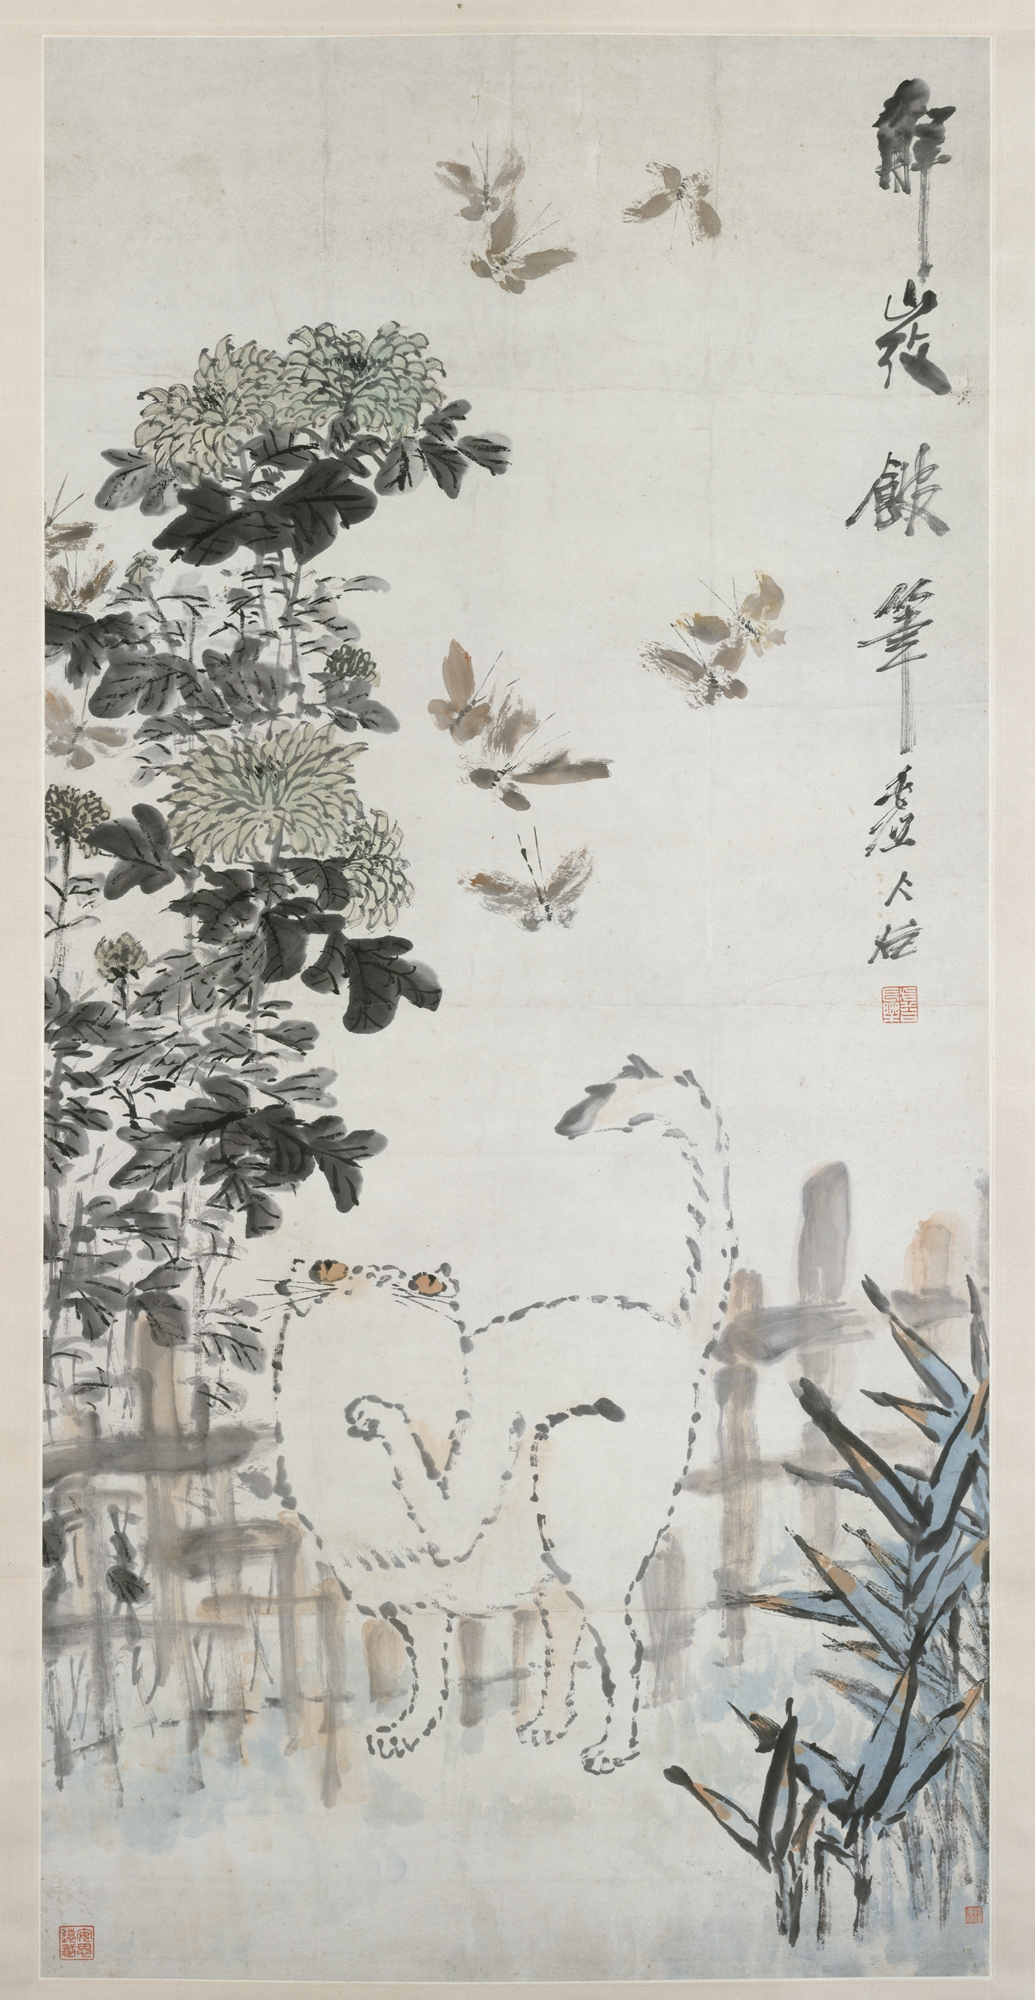 Qing Xu valley - portrait of butterflies and cat.